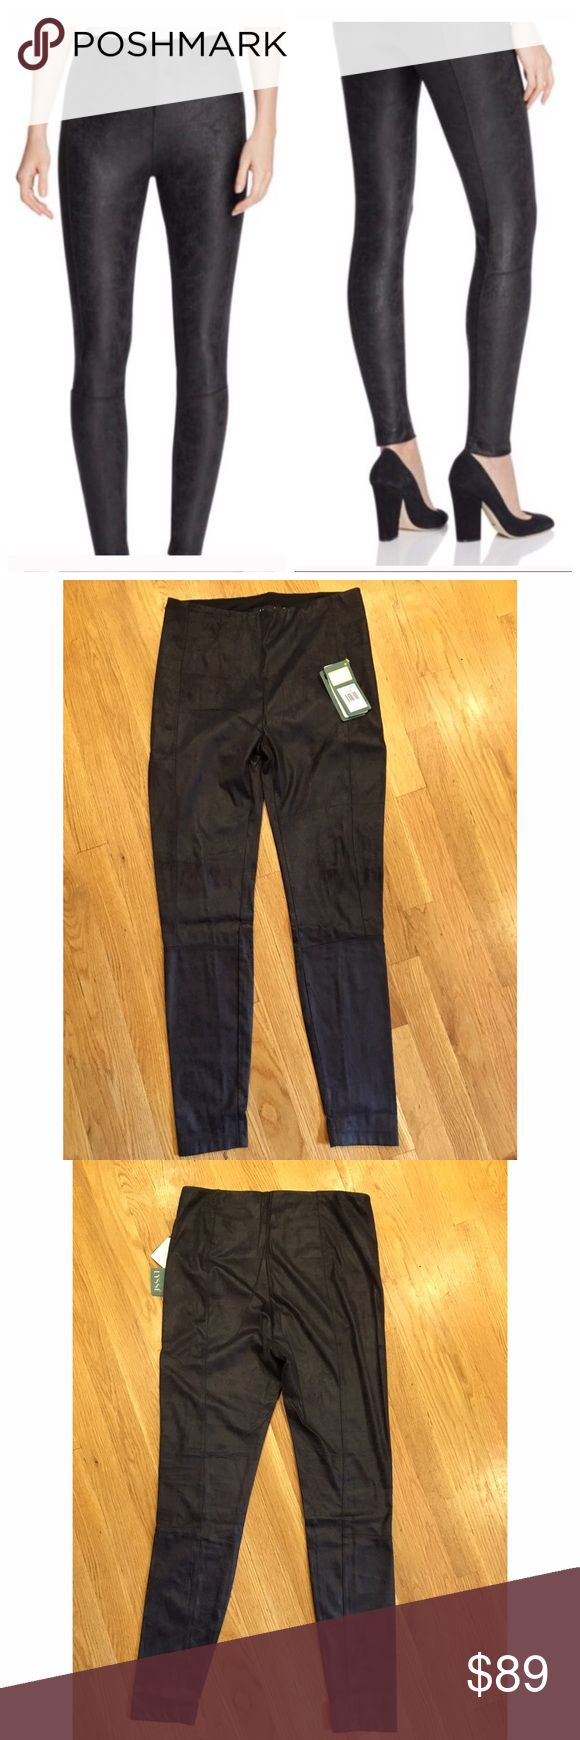 NWT Lysse textured faux leather leggings med Gorgeous distressed/textured faux leather leggings- looks like genuine leather. Color is black (but looks like a deep charcoal) size medium but could also fit small lysse Pants Leggings